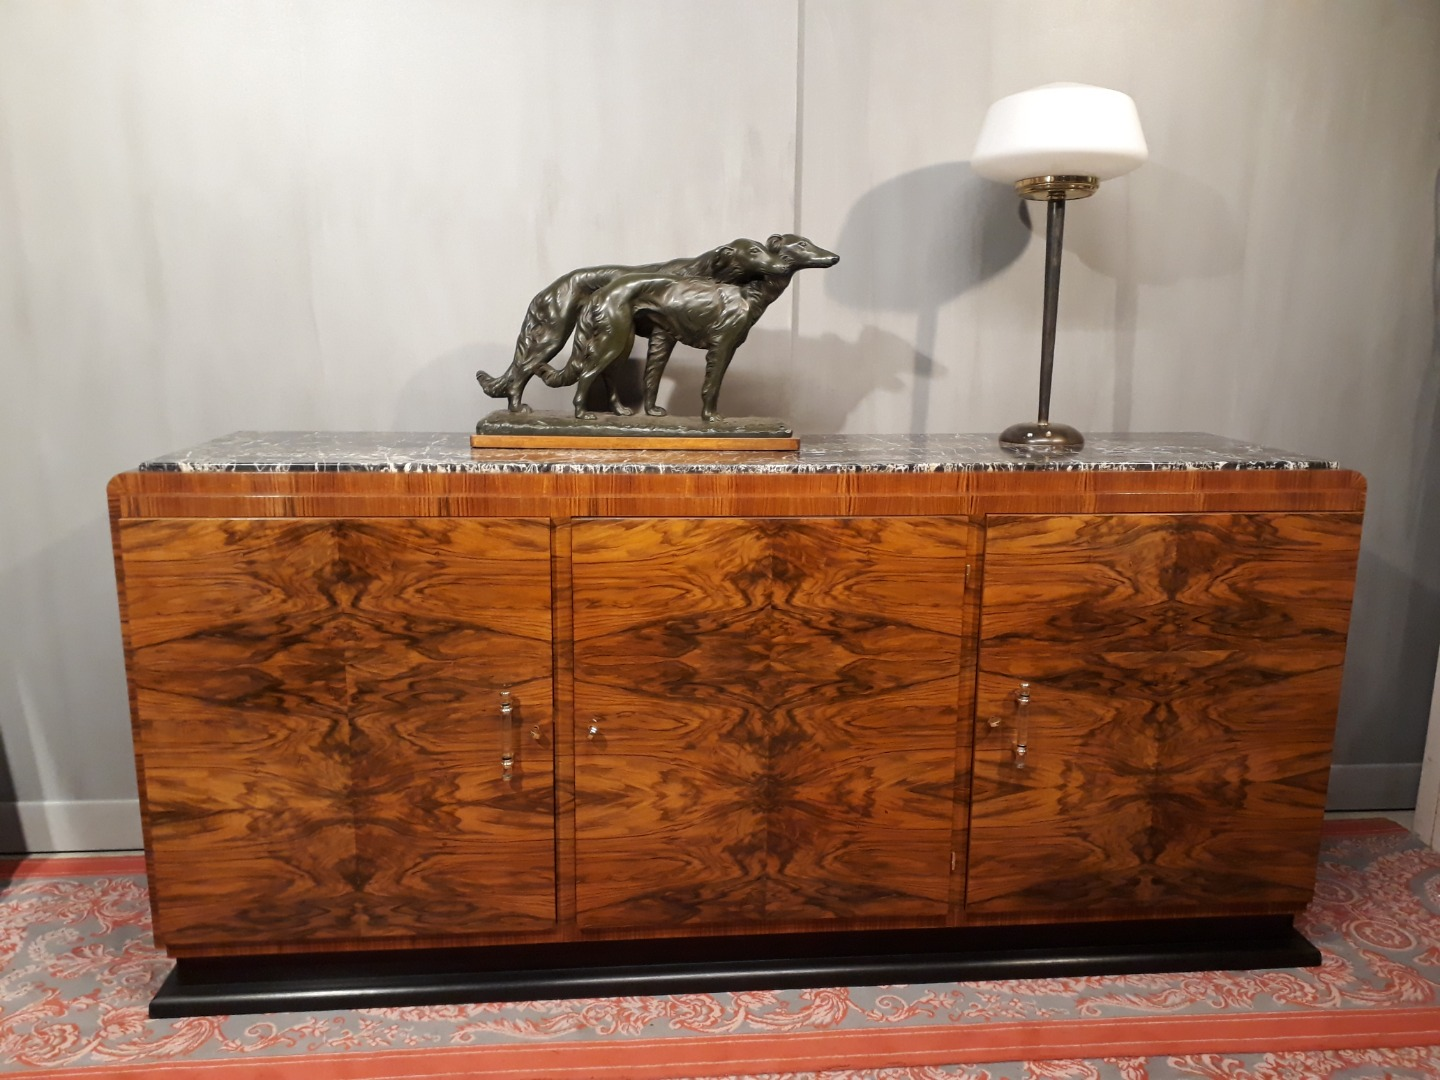 ART DECO PERIODE SIDEBOARD